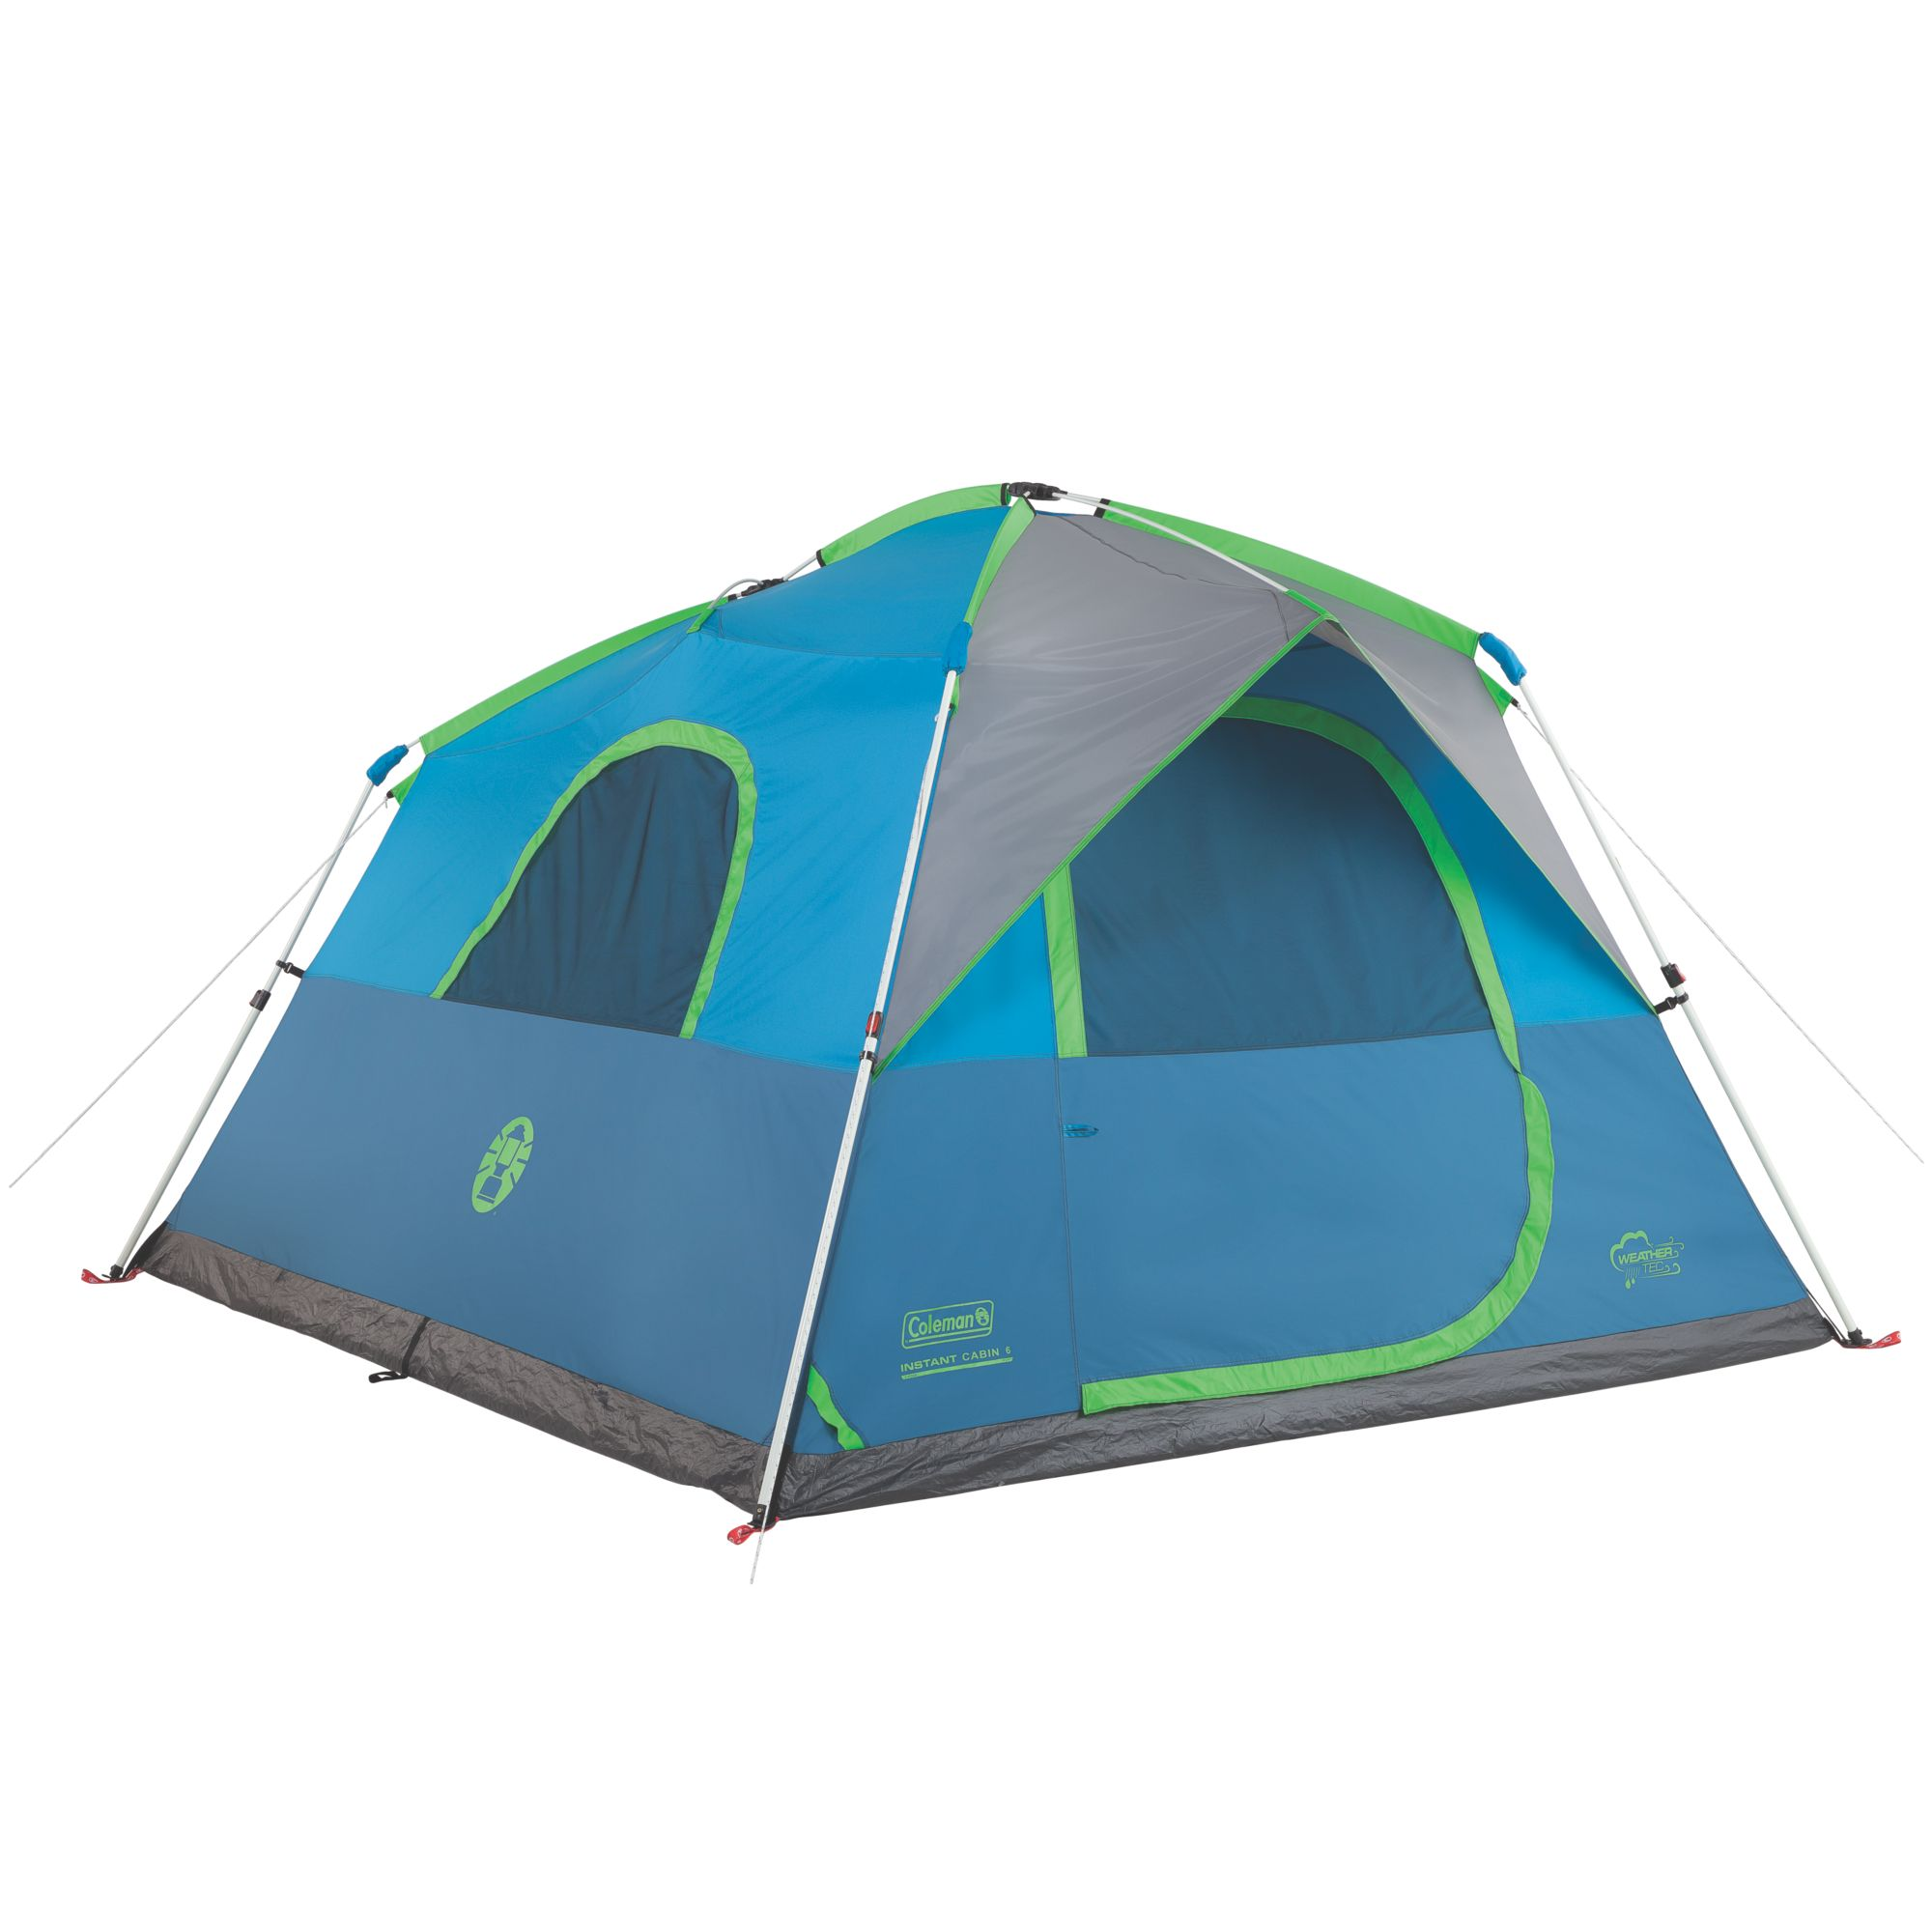 Coleman Signal Mountain 6-Person Instant Tent  sc 1 st  C&ersland & Coleman Signal Mountain 6-Person Instant Tent - Coleman 2000024696 ...